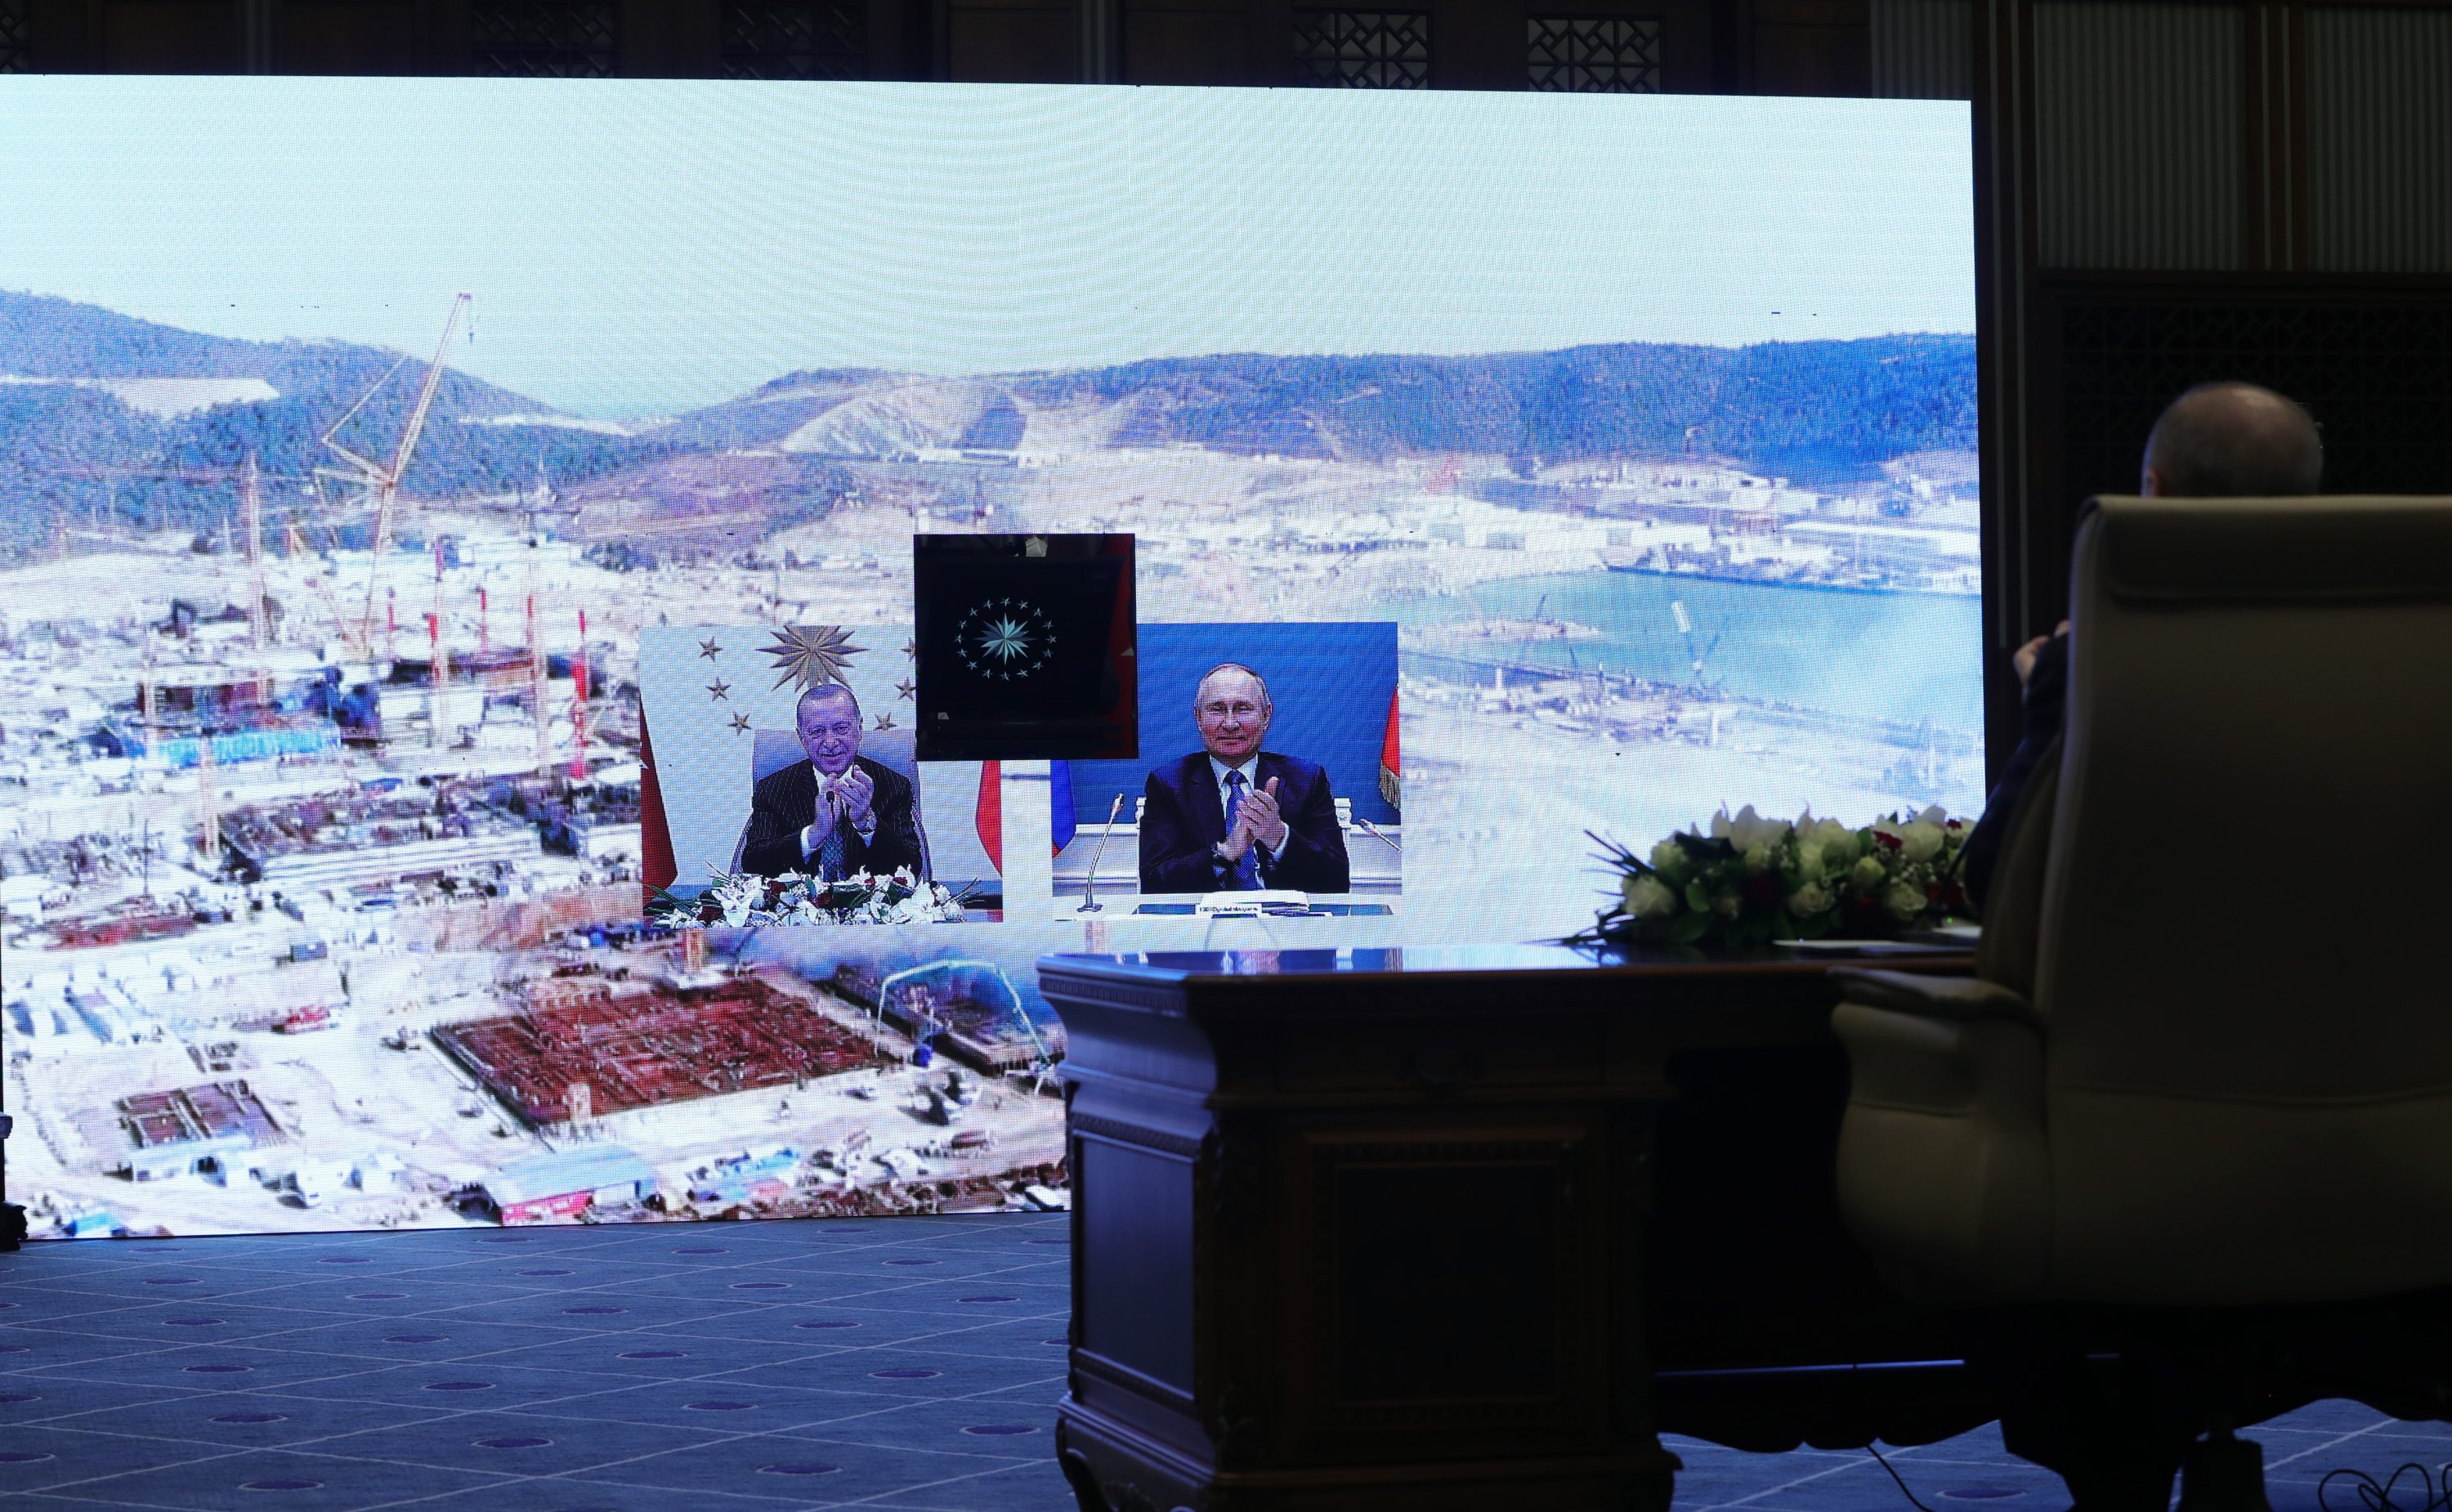 President Recep Tayyip Erdoğan sits on the far right, and on-screen bottom left, with Russia's President Vladimir Putin, bottom right, during a groundbreaking ceremony for the third reactor at the Akkuyu Nuclear Power Plant in Mersin province on the Mediterranean coast, in the capital Ankara, Turkey, March 10, 2021. (AA Photo)